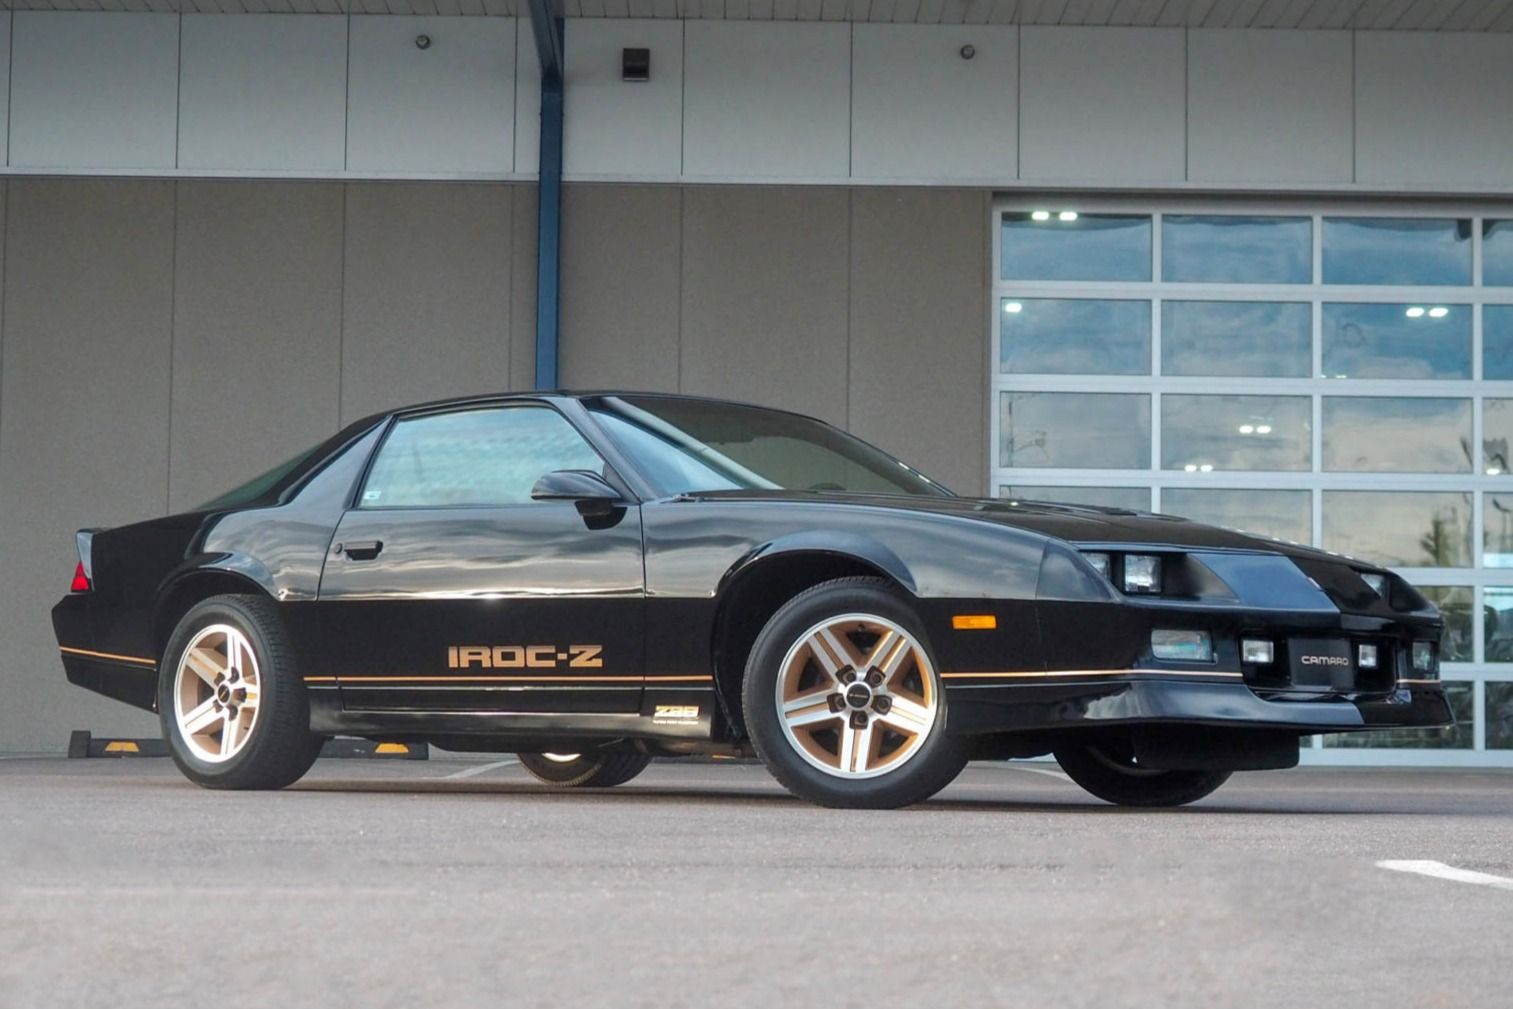 Own An Original 3k Mile 1985 Chevy Camaro Z28 Iroc Z Time Capsule